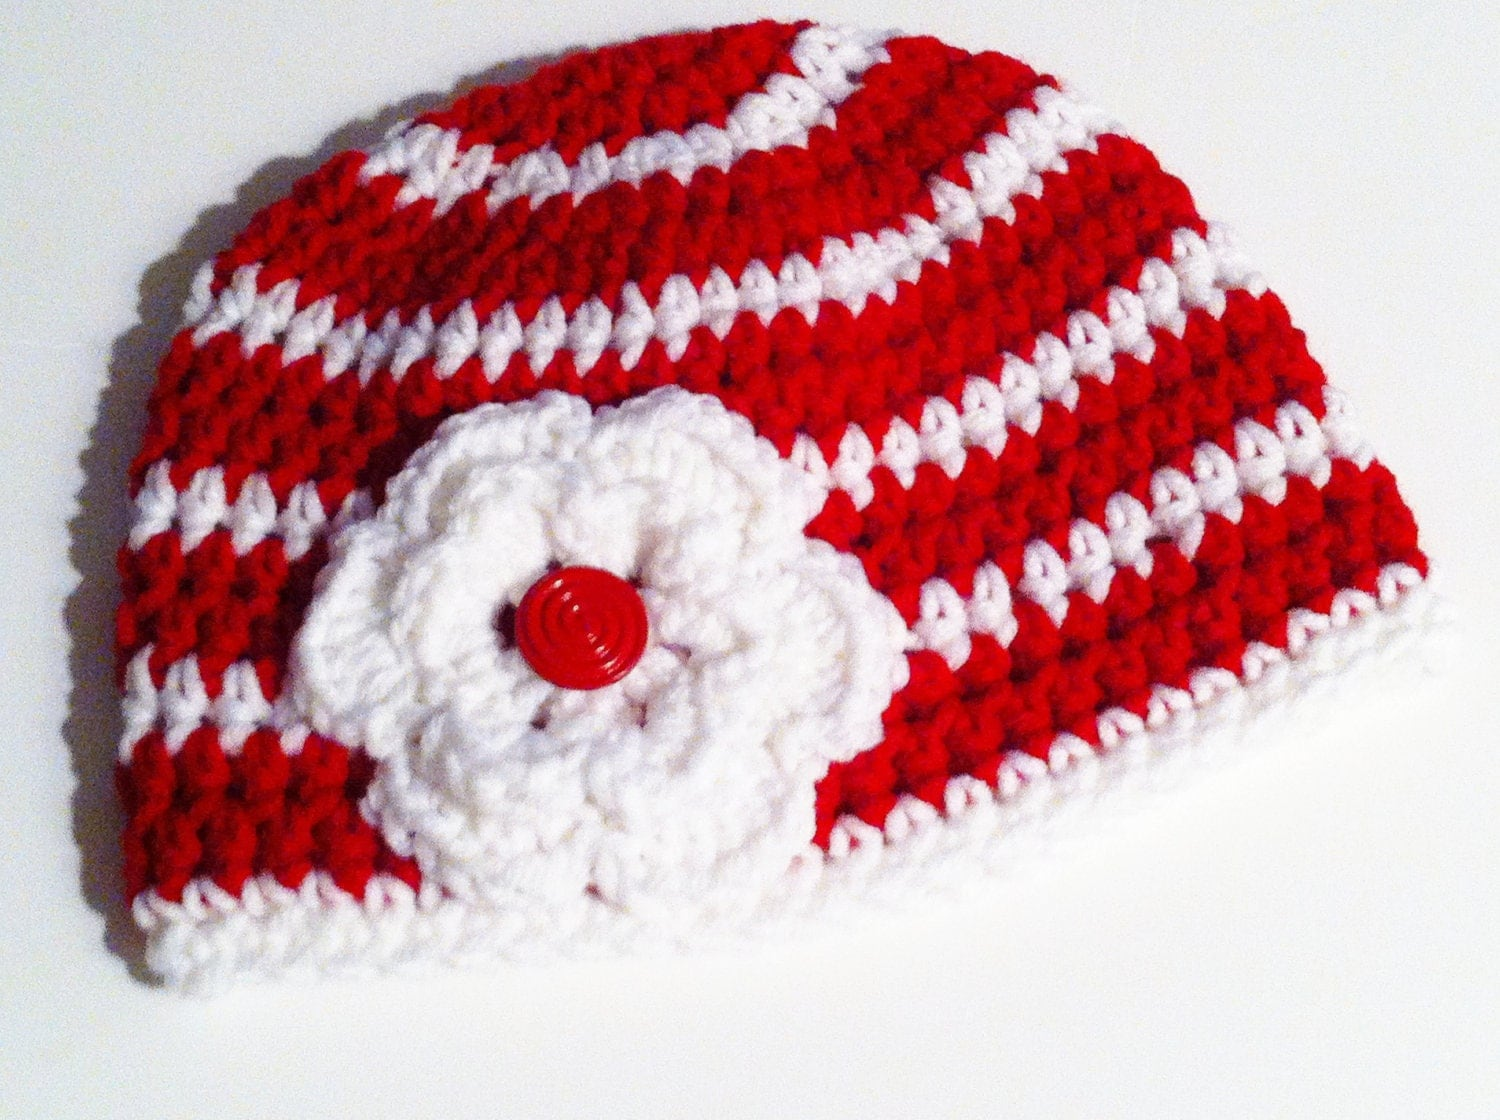 Christmas Crochet Hat - Baby Beanie - Red & White Striped Hat with Crochet Flower - Children